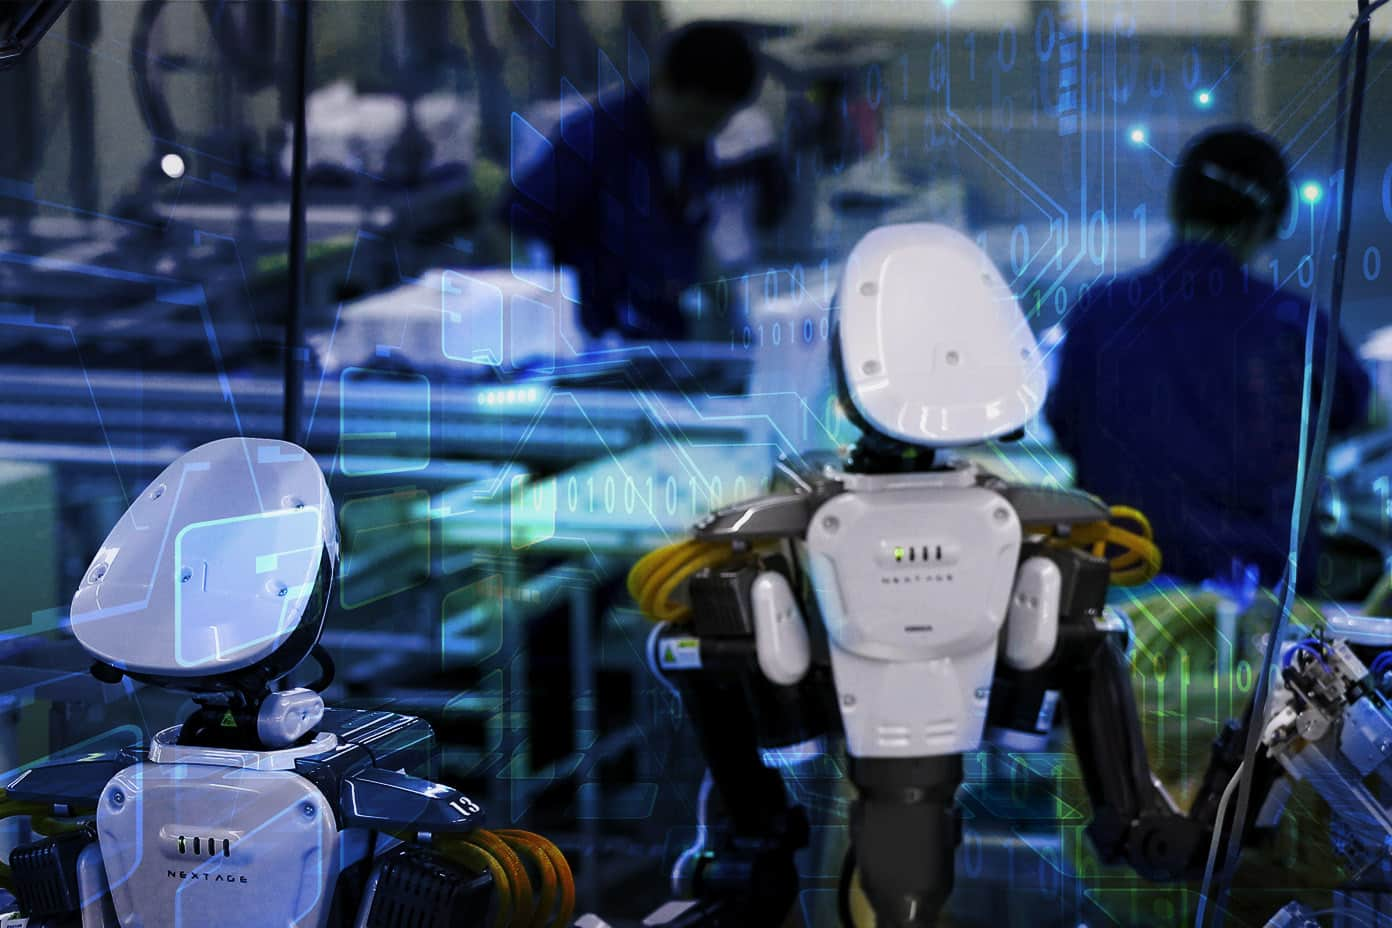 Robots are Displacing Humans in the Workplace – Reality or Fear?